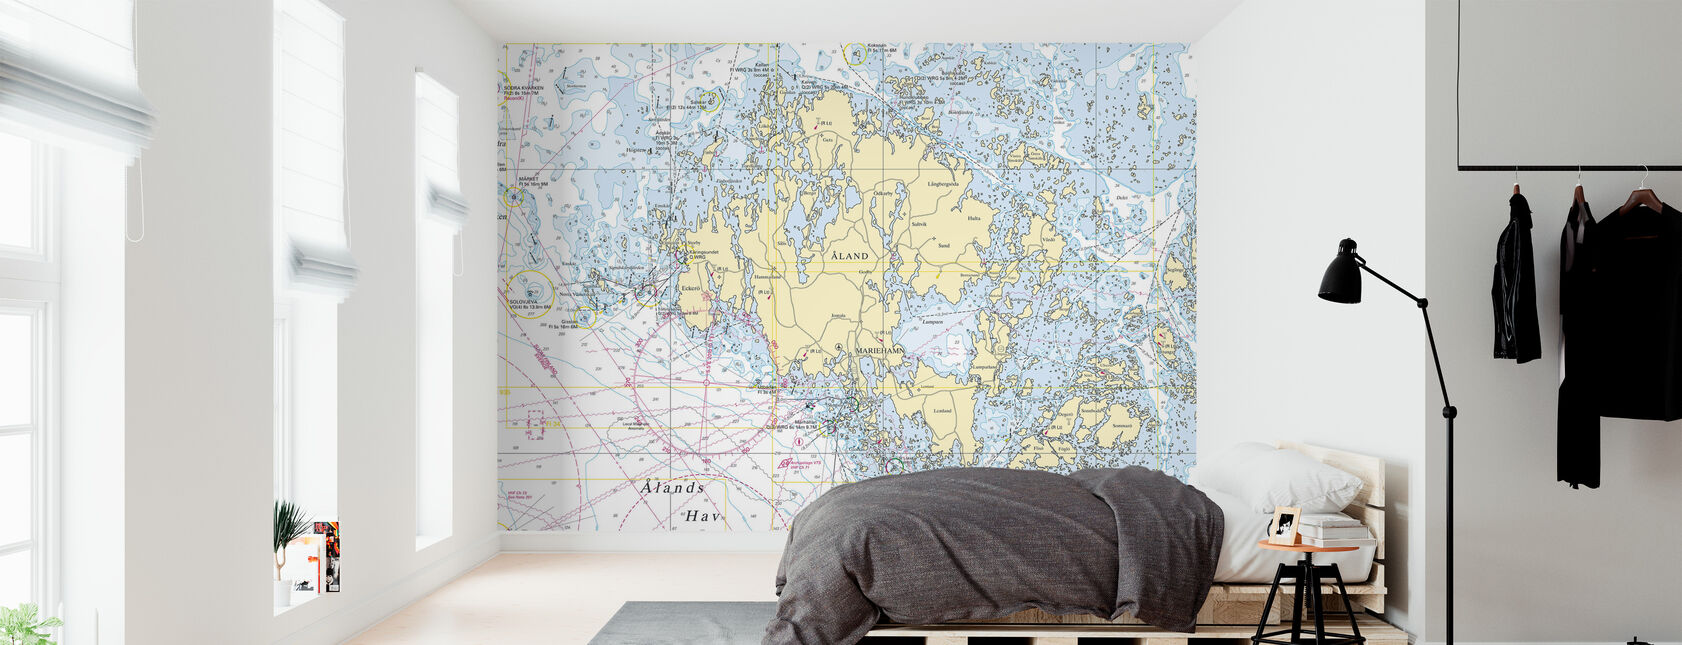 Aland Archipelago - Wallpaper - Bedroom